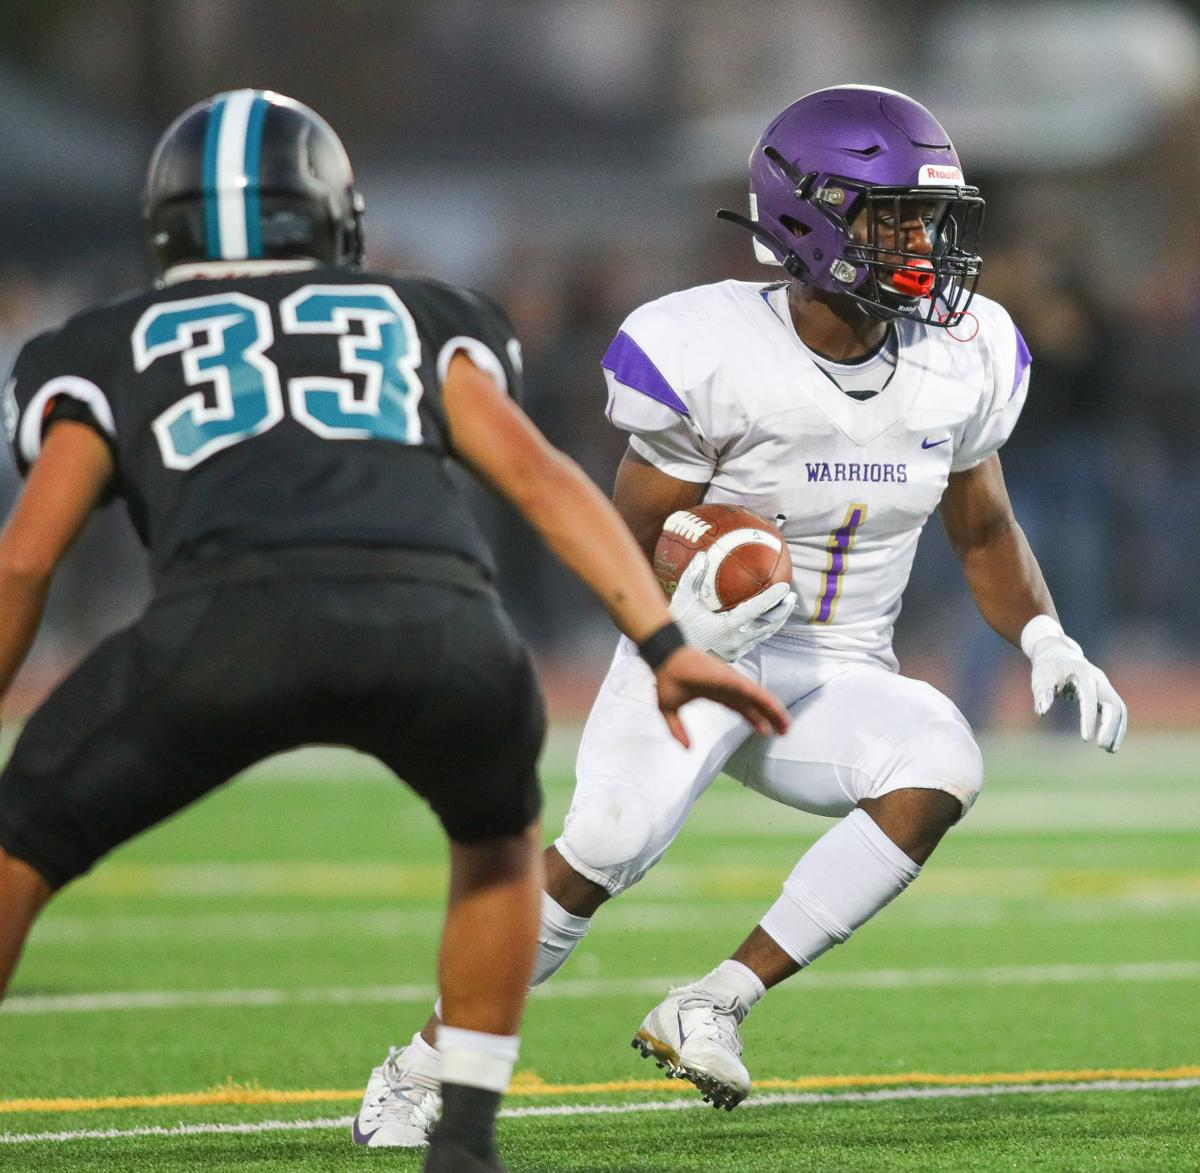 090619 FB Pioneer vs Righetti 07.jpg